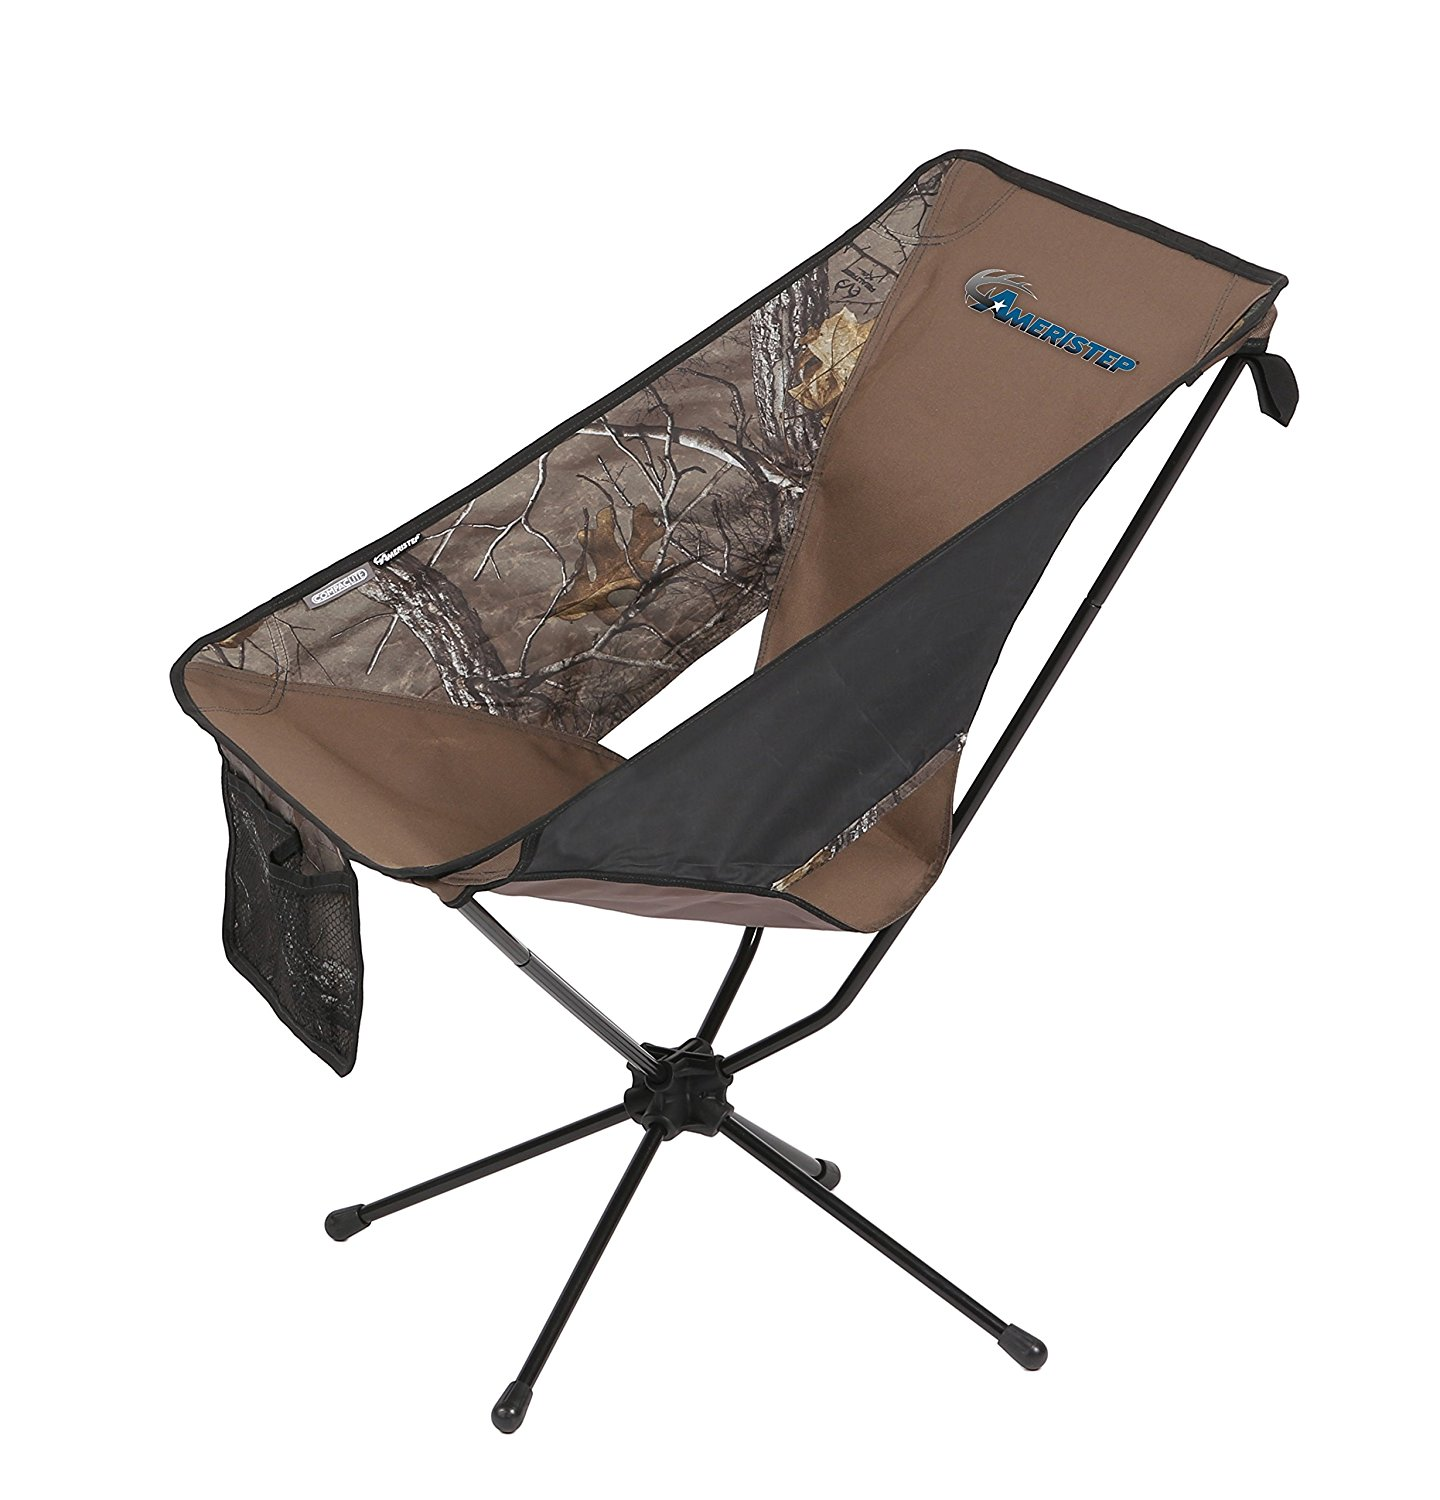 hunting seats and chairs upholstered folding chair ameristep tellus lite for walmart com